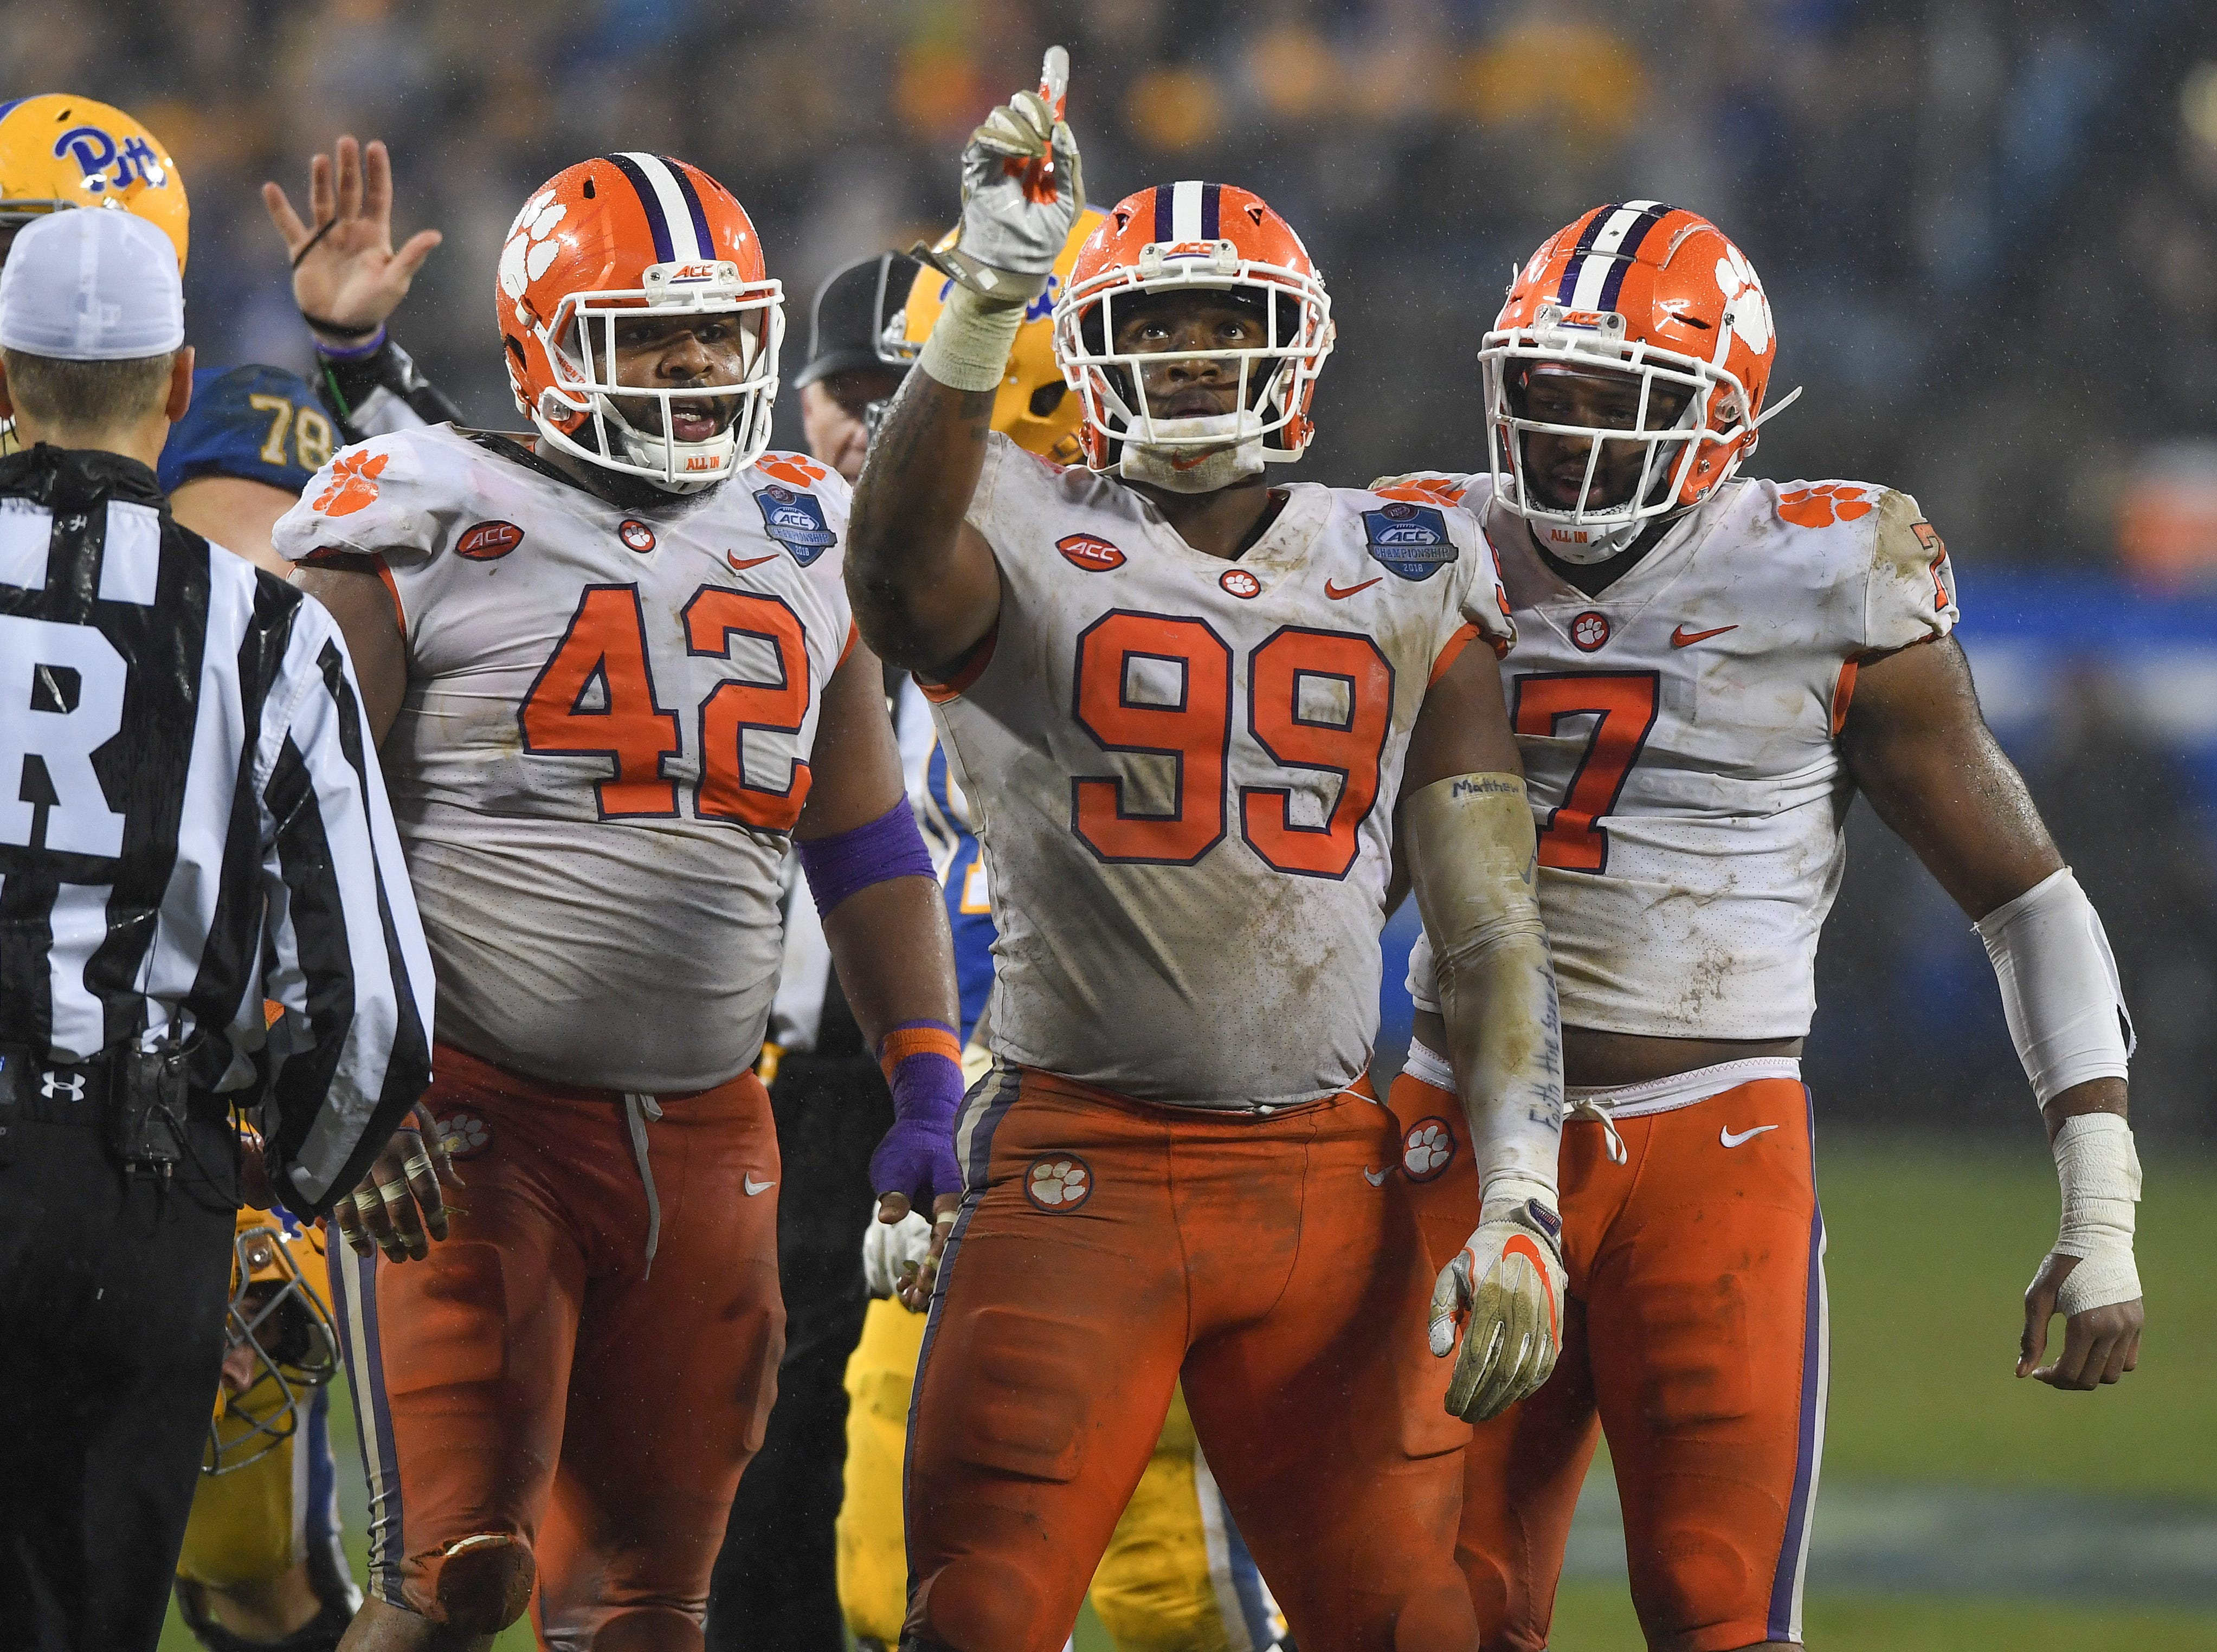 Clemson defensive lineman Clelin Ferrell (99) points skyward after a defensive stop against Pittsburgh during the 2nd quarter of the Dr. Pepper ACC Championship at Bank of America Stadium in Charlotte, N.C. Saturday, December 1, 2018.